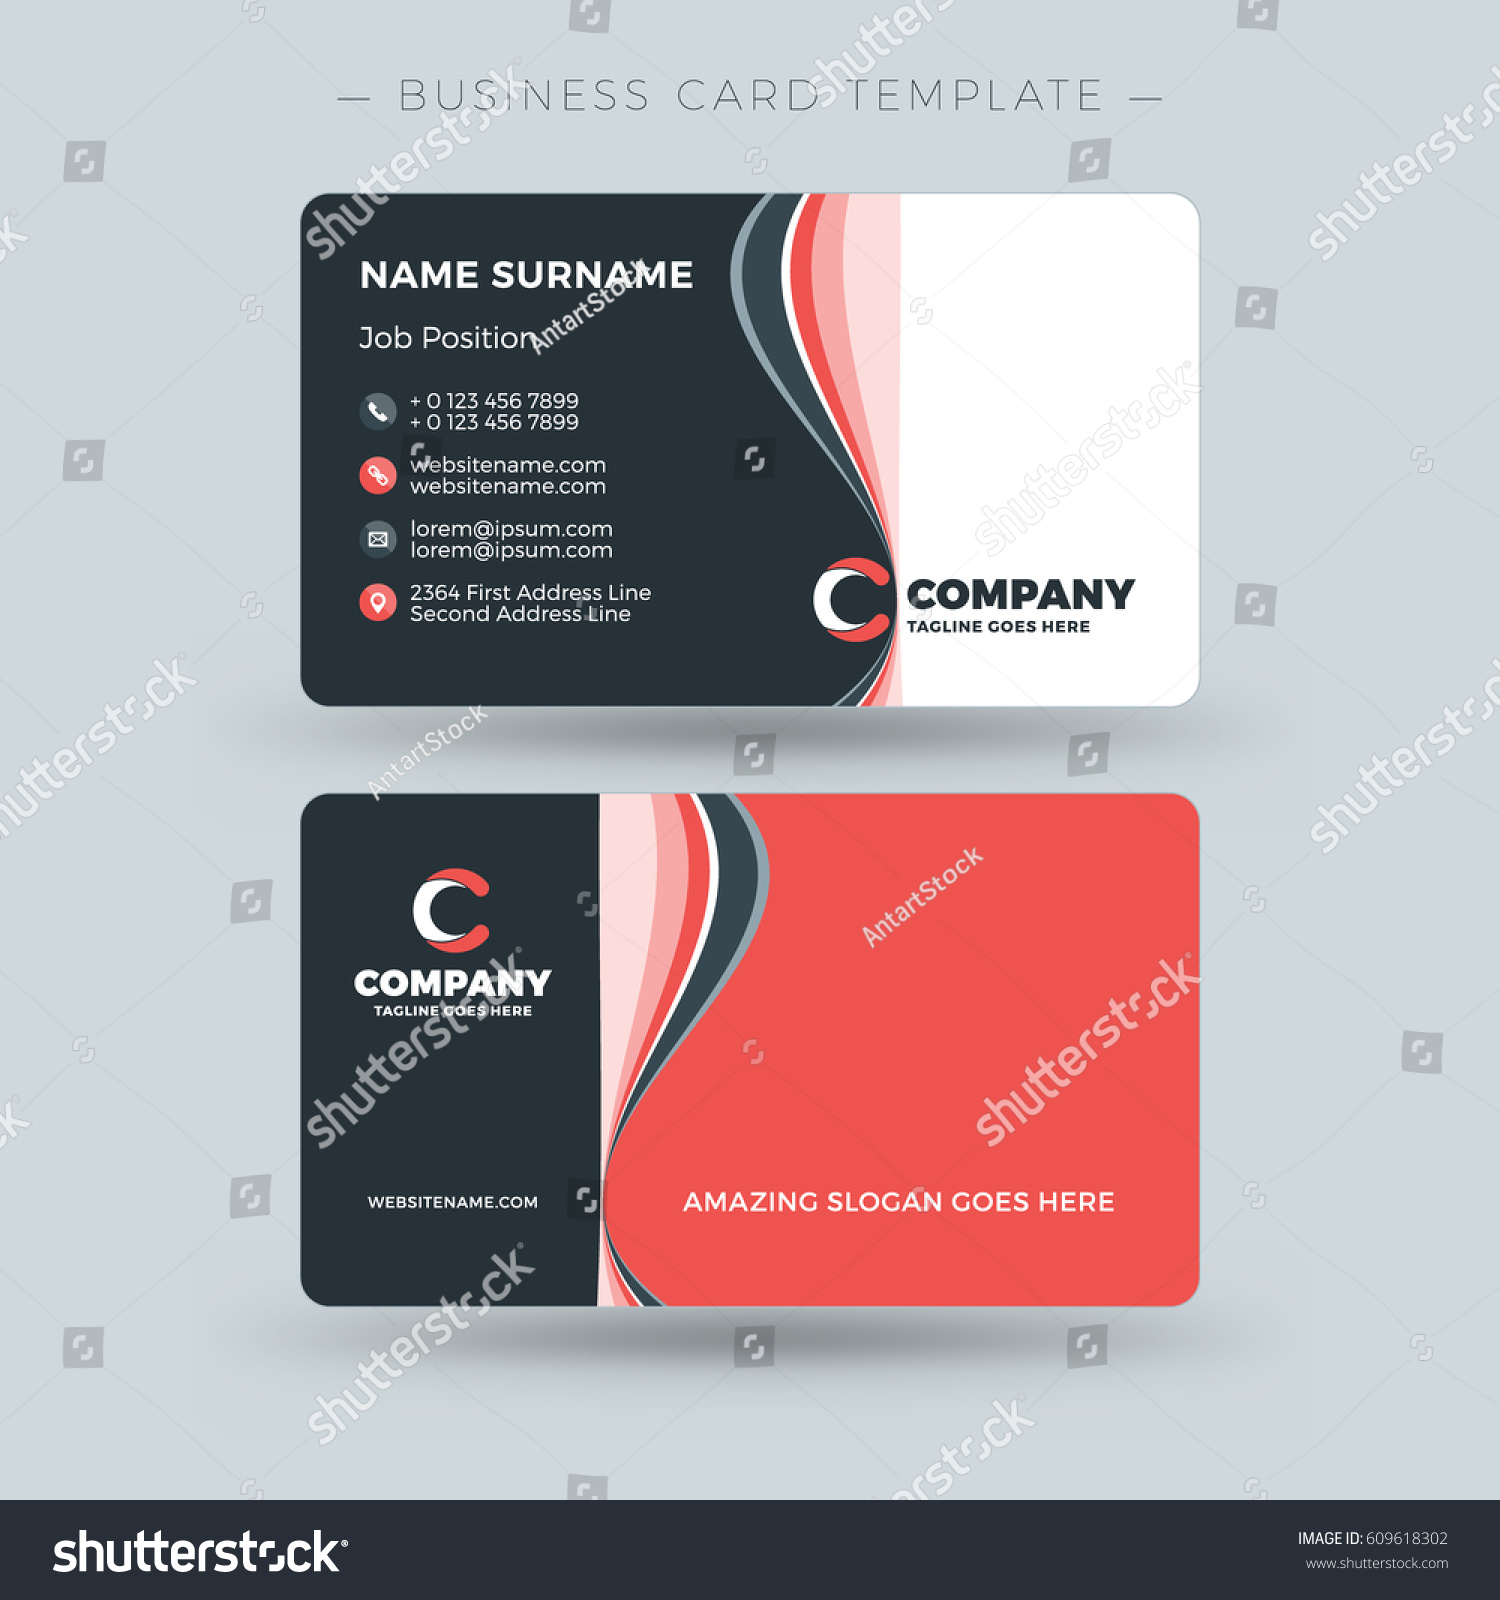 Doublesided Business Card Template Abstract Red Stock Vector - Double sided business card template